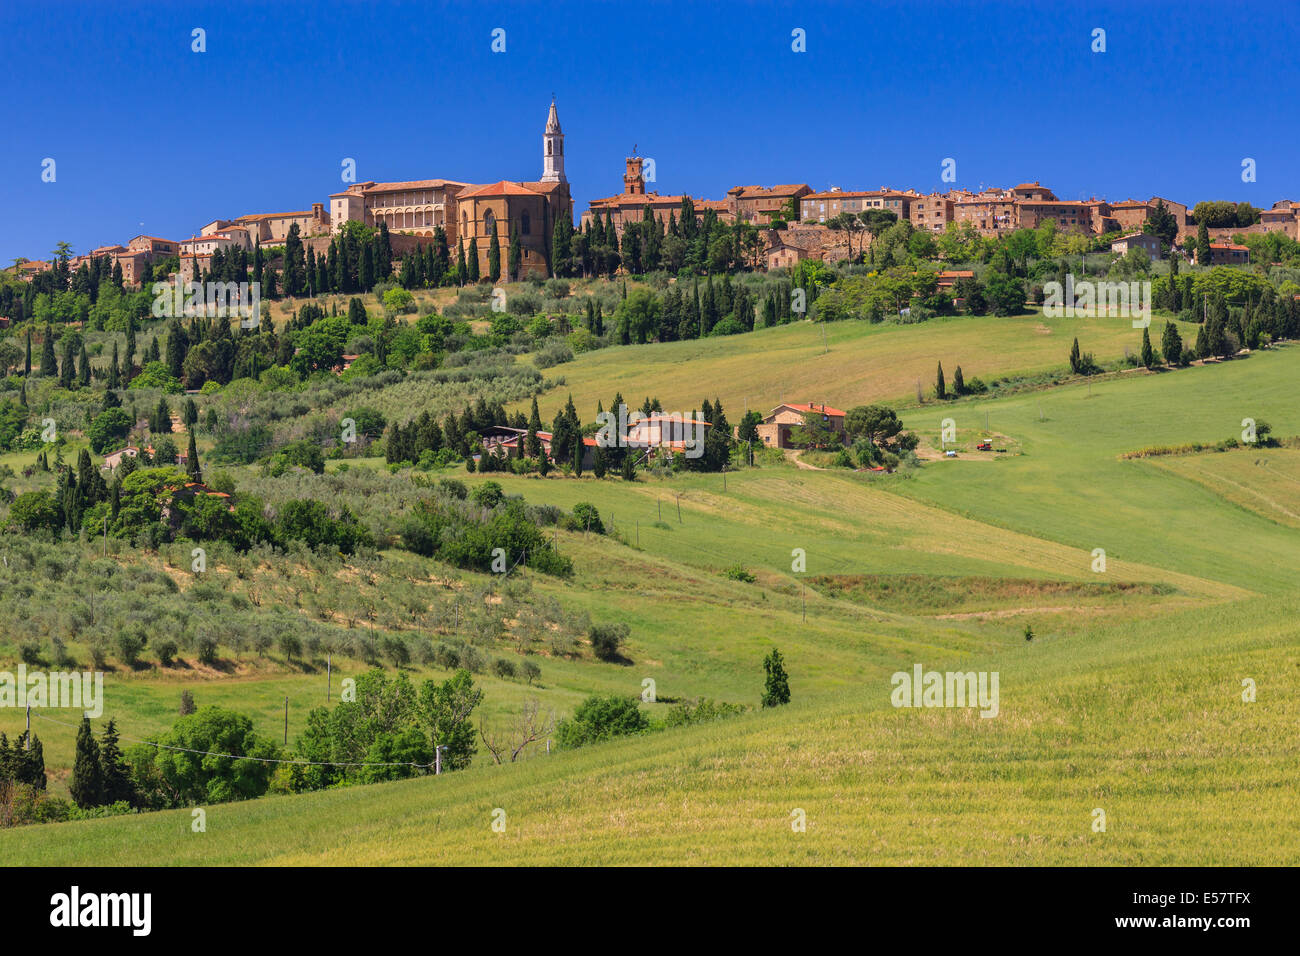 View on Pienza, a town and comune in the province of Siena, in the Val d'Orcia in Tuscany (central Italy), between Stock Photo